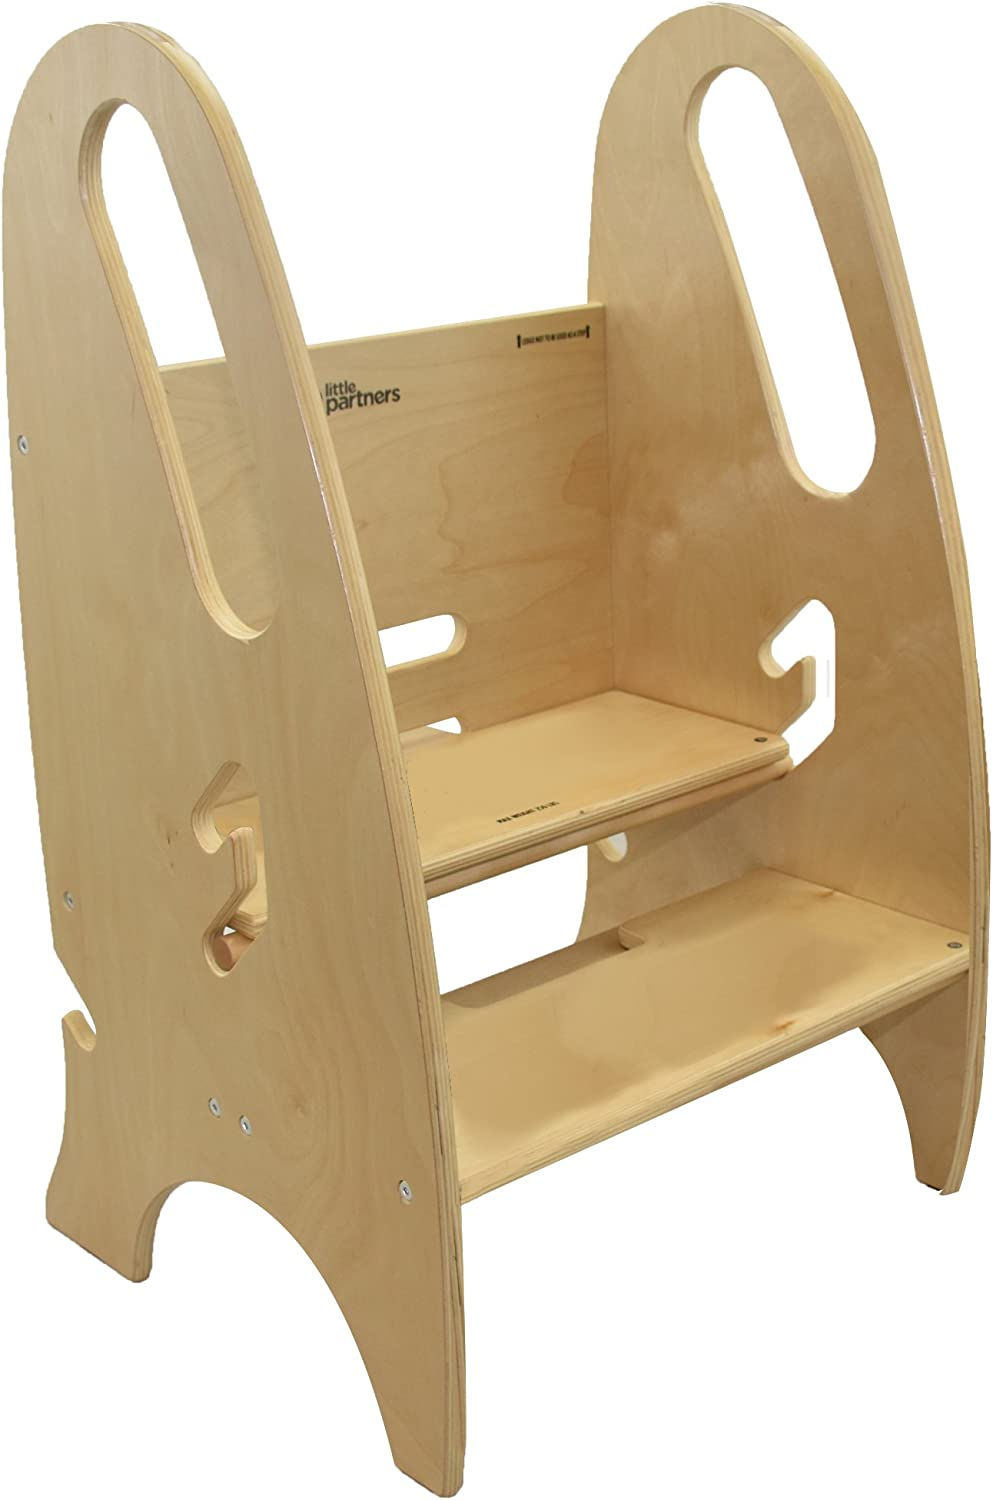 Little Partners 3-in-1 Growing Step Stool, Natural